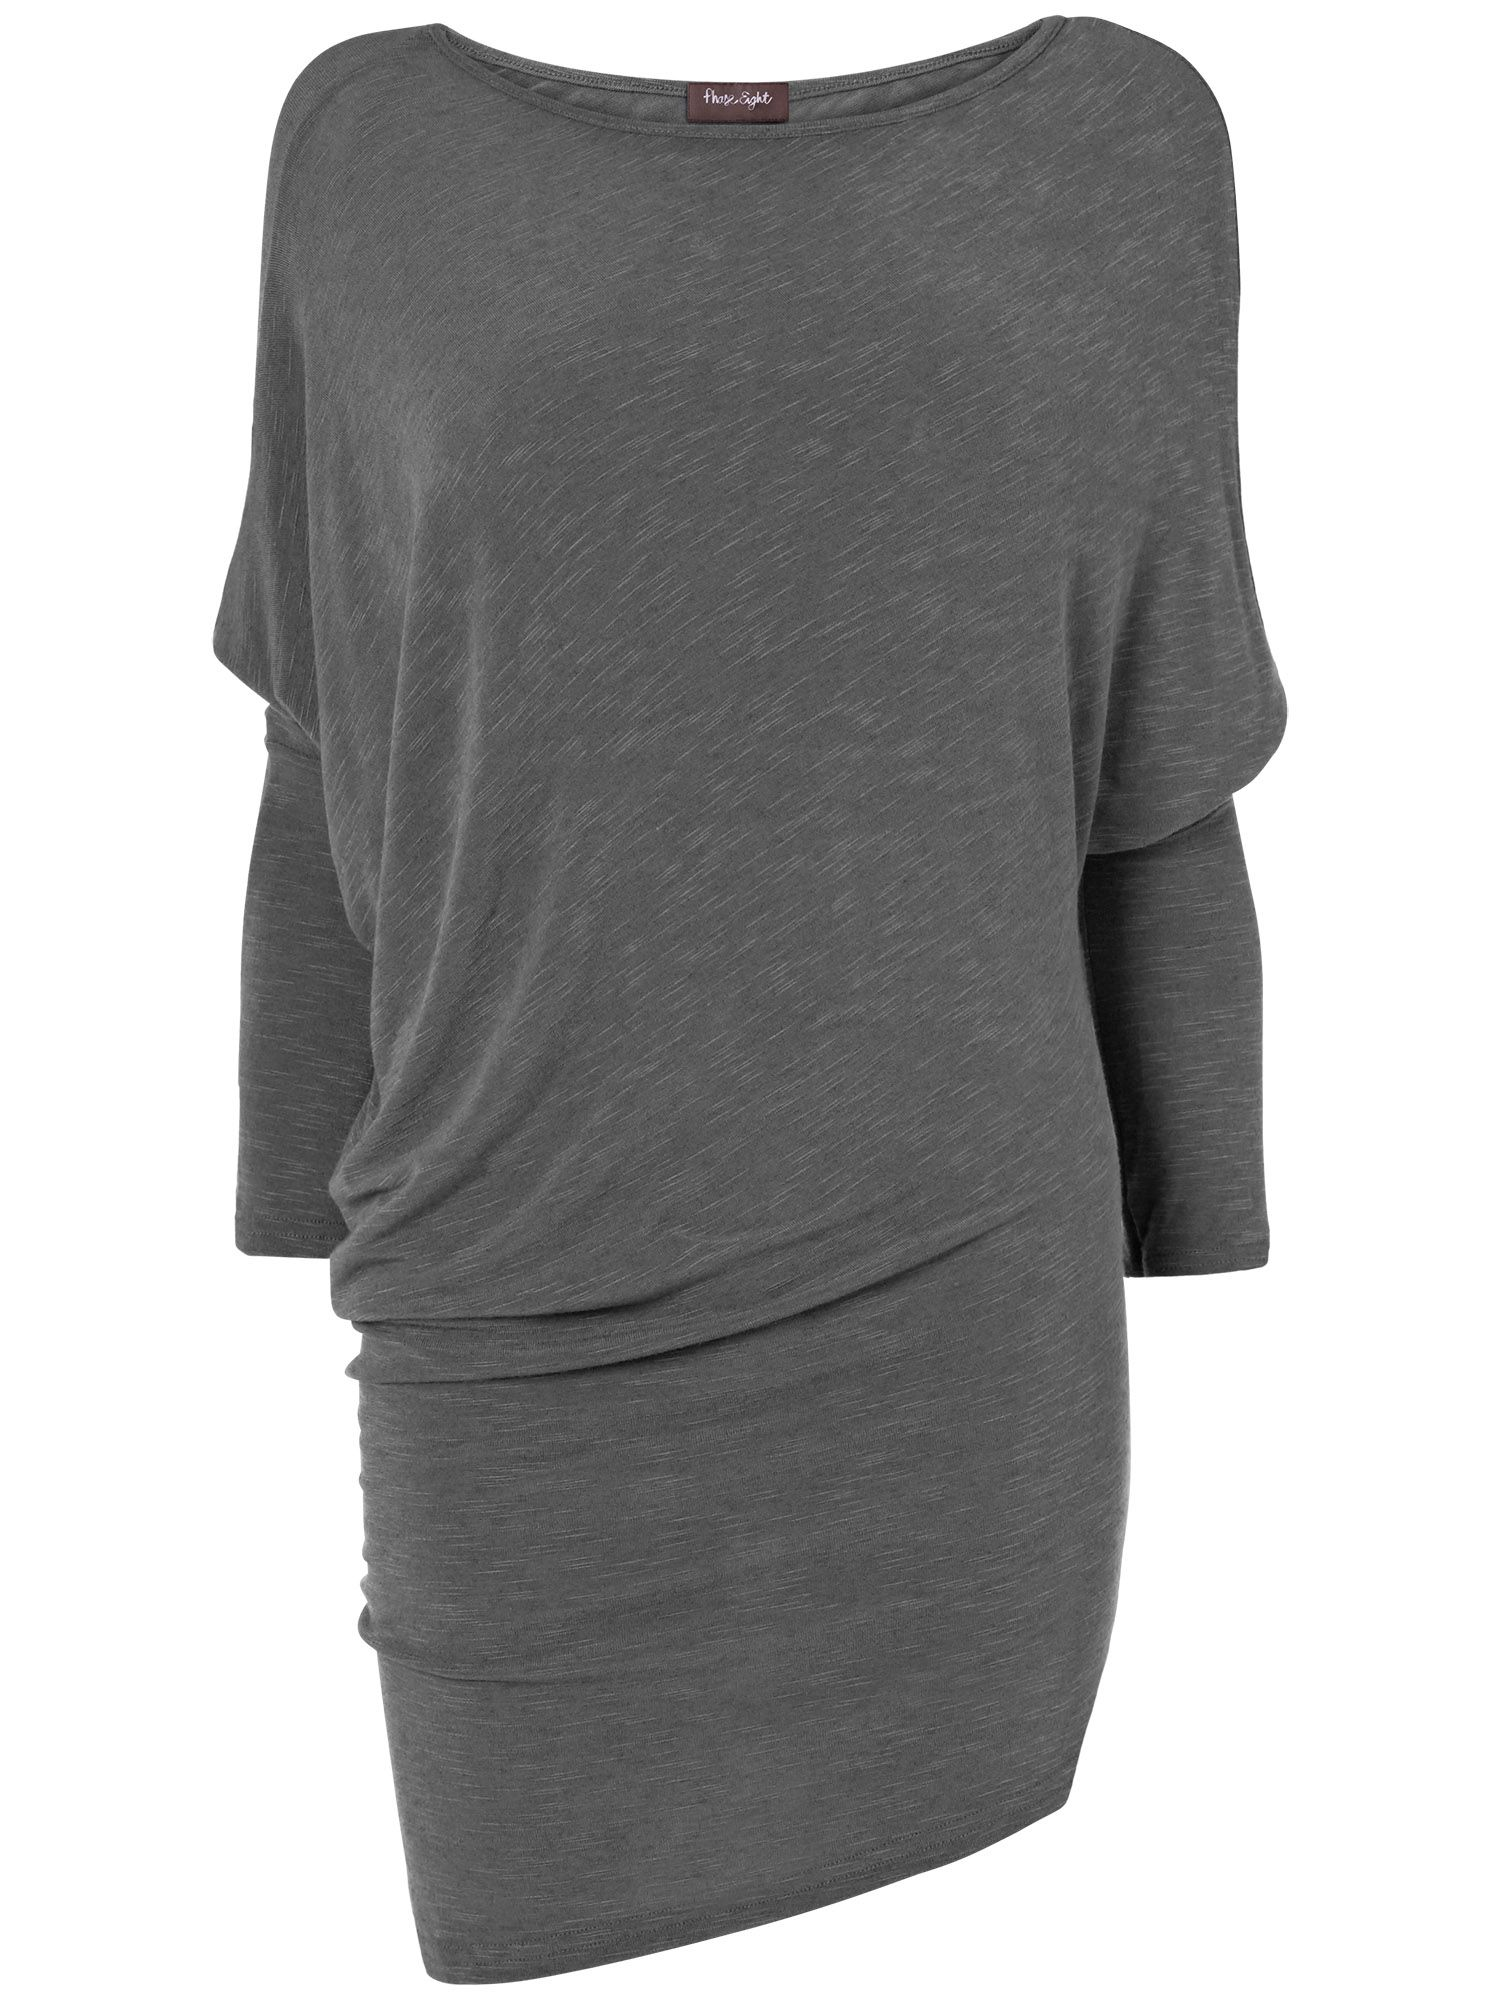 Eve asymmetric top